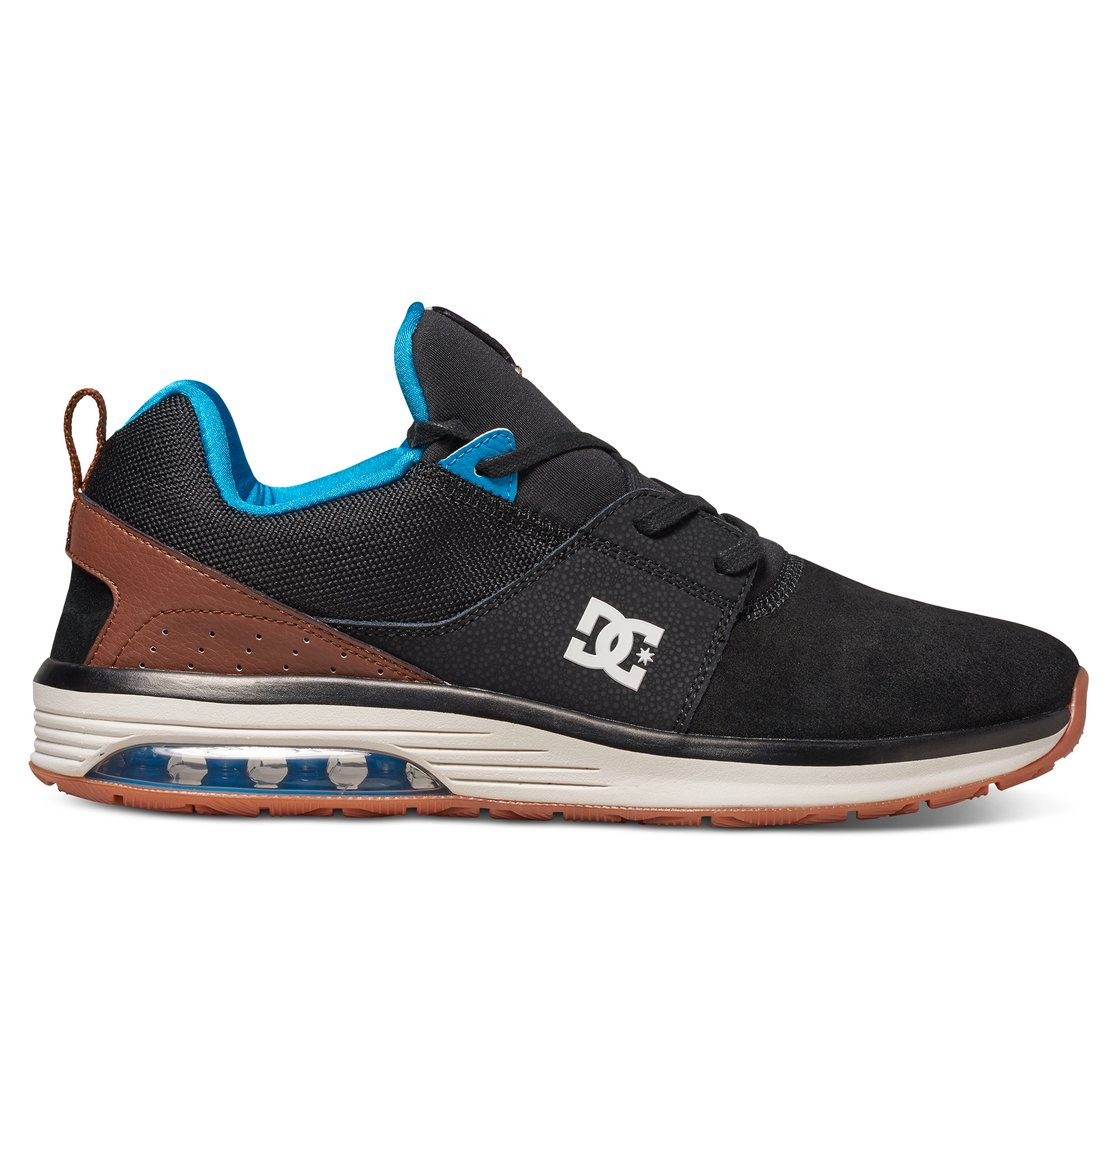 098816f7e24ca 0 Heathrow IA Tom Pages - Chaussures ADYS200048 DC Shoes